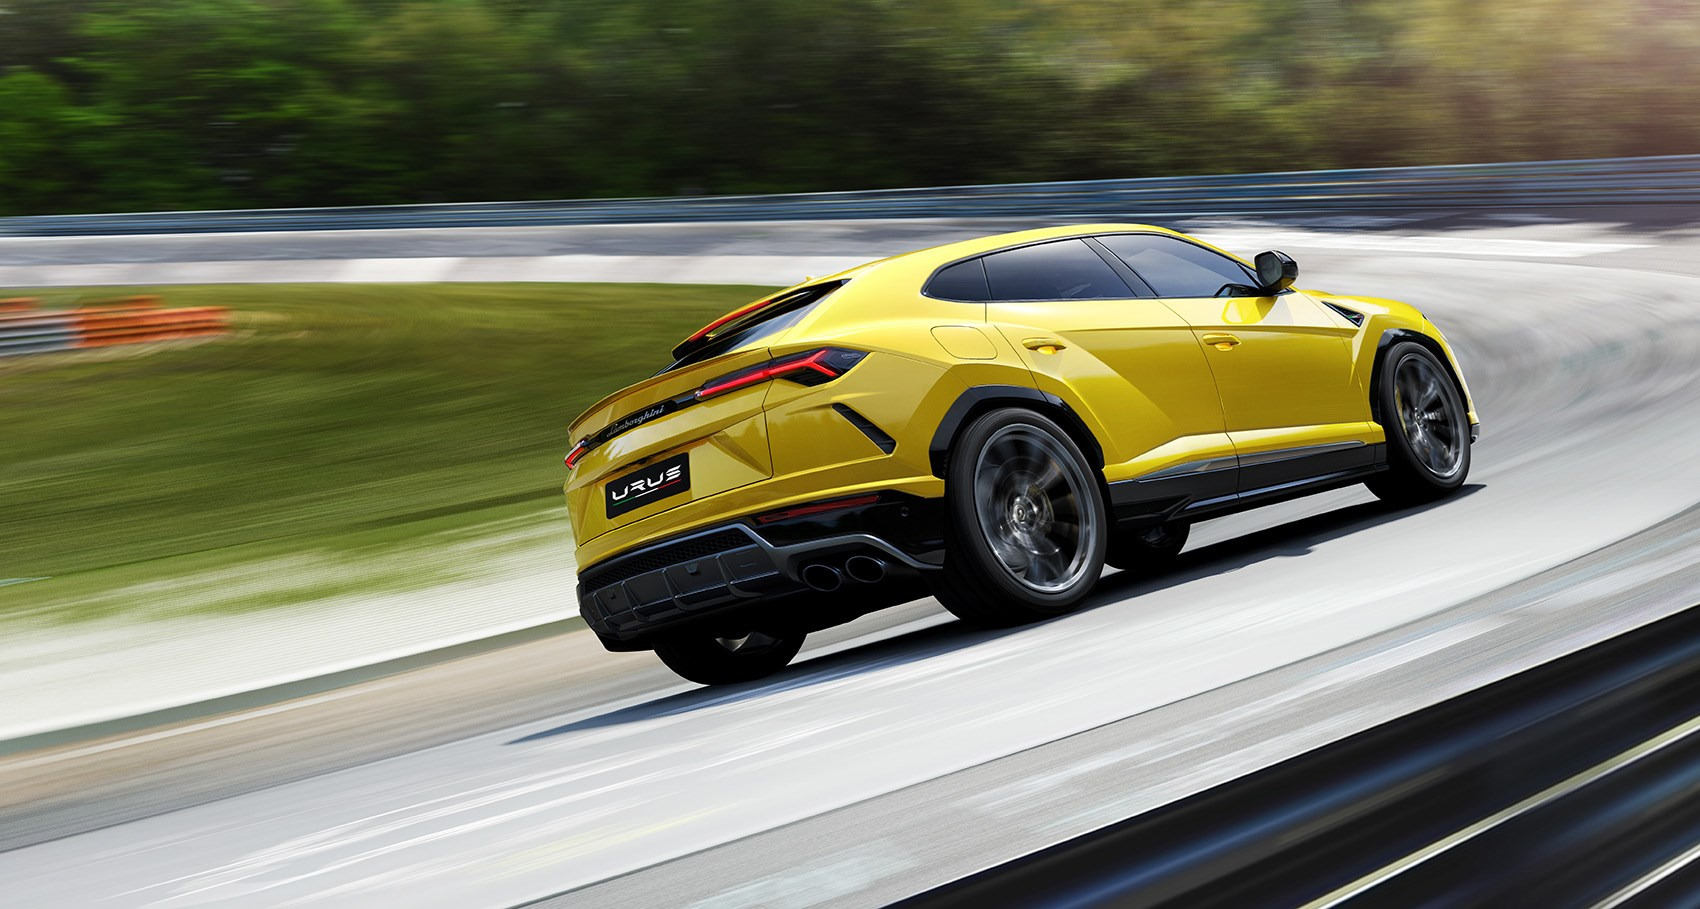 Lamborghini Urus to set Nurburgring lap record for SUVs | CAR Magazine